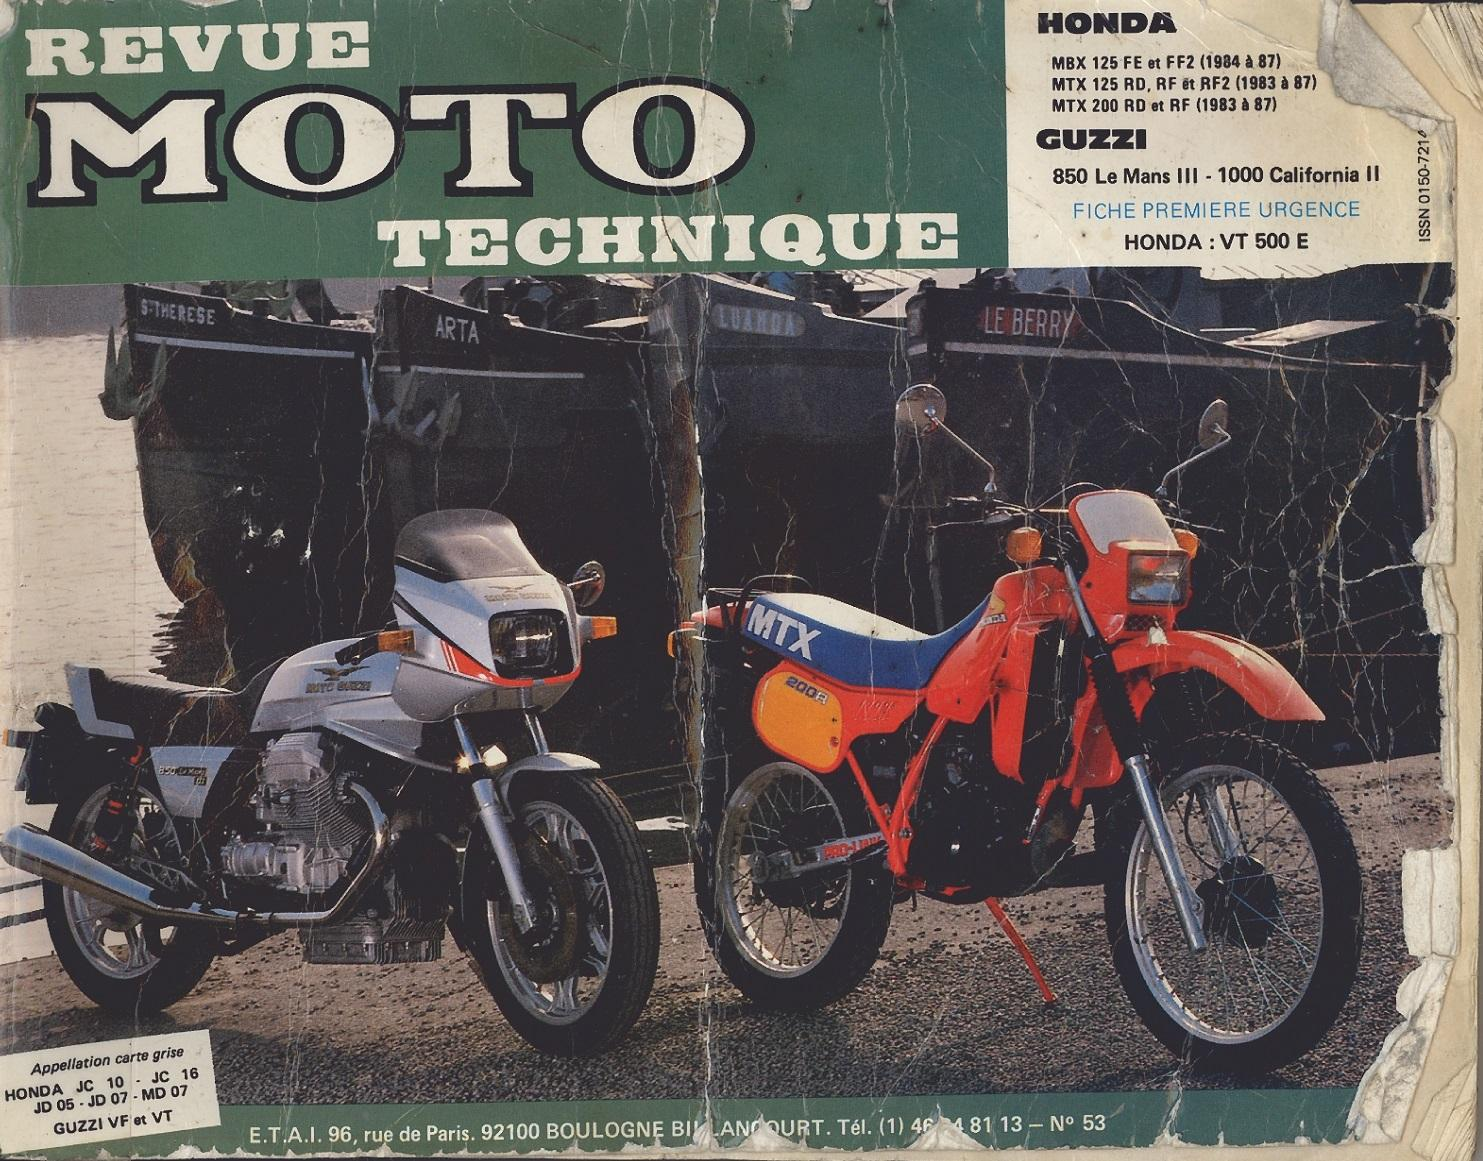 Workshop Manual for Honda MTX200RD (1983-1987)